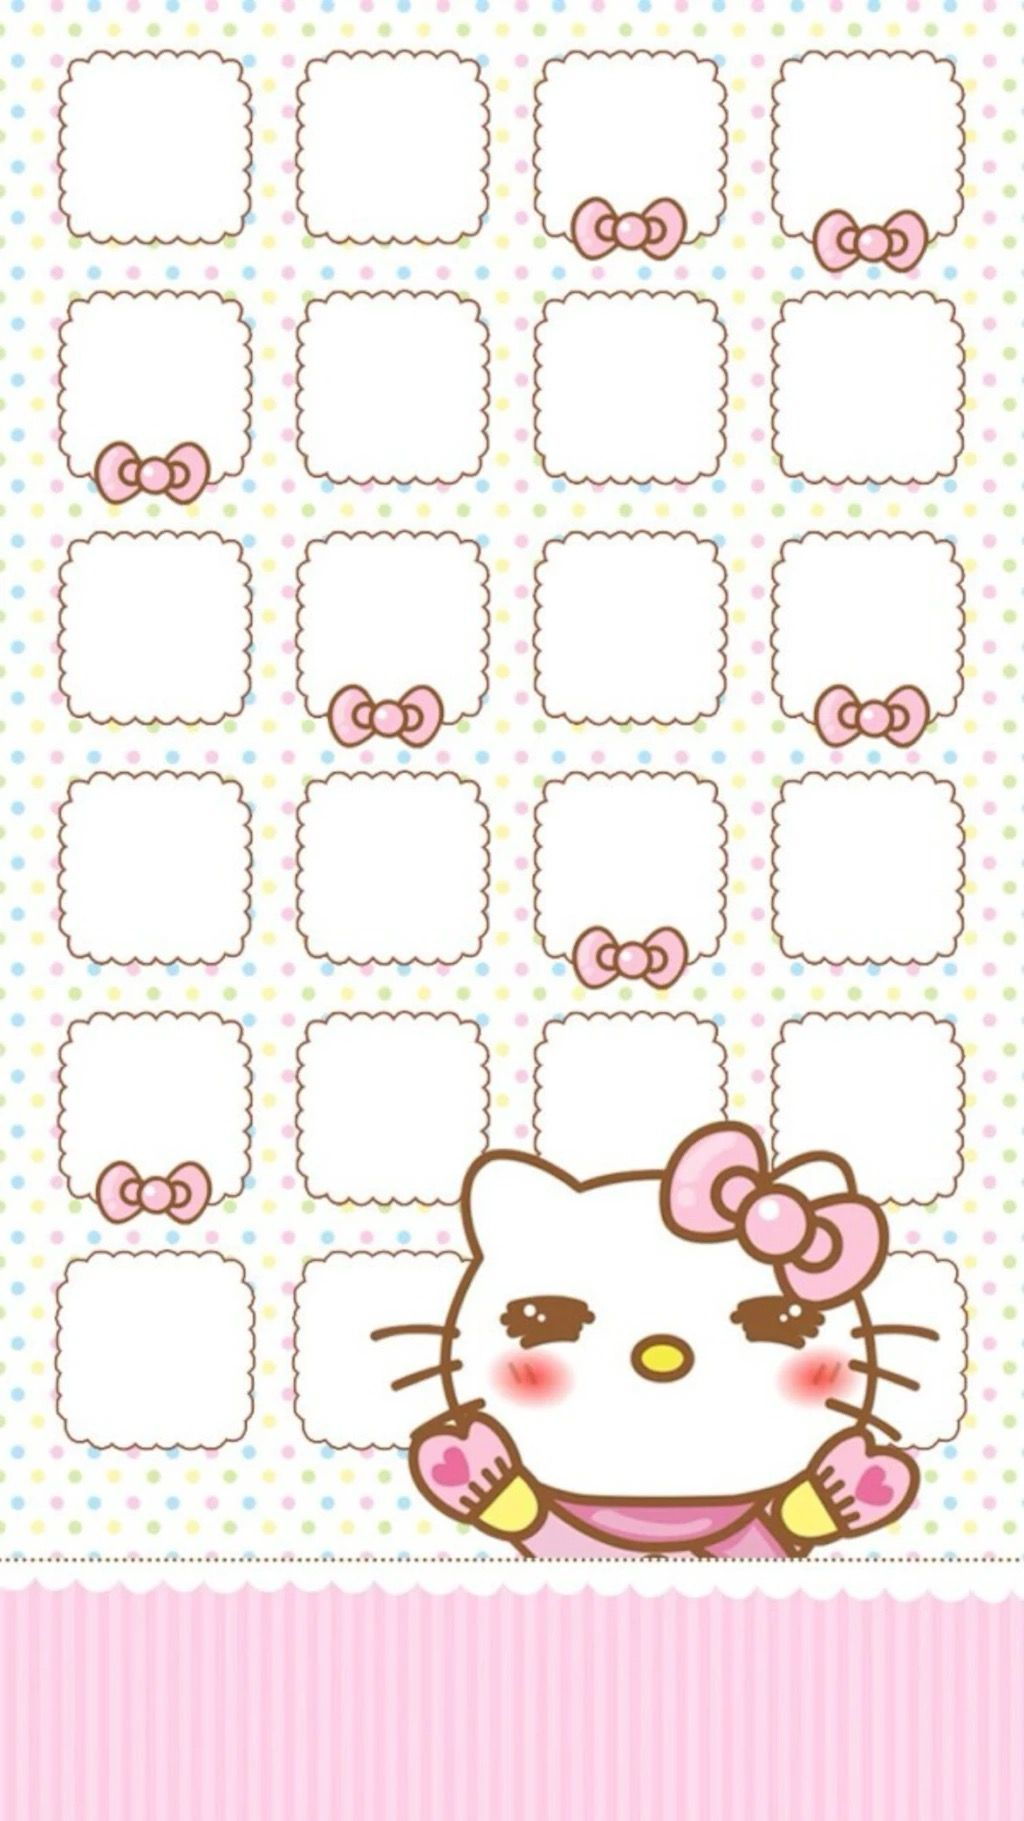 Cool Wallpaper Hello Kitty Shelf - e7441033fd780332690eb72b25813d56  Image_394124.jpg